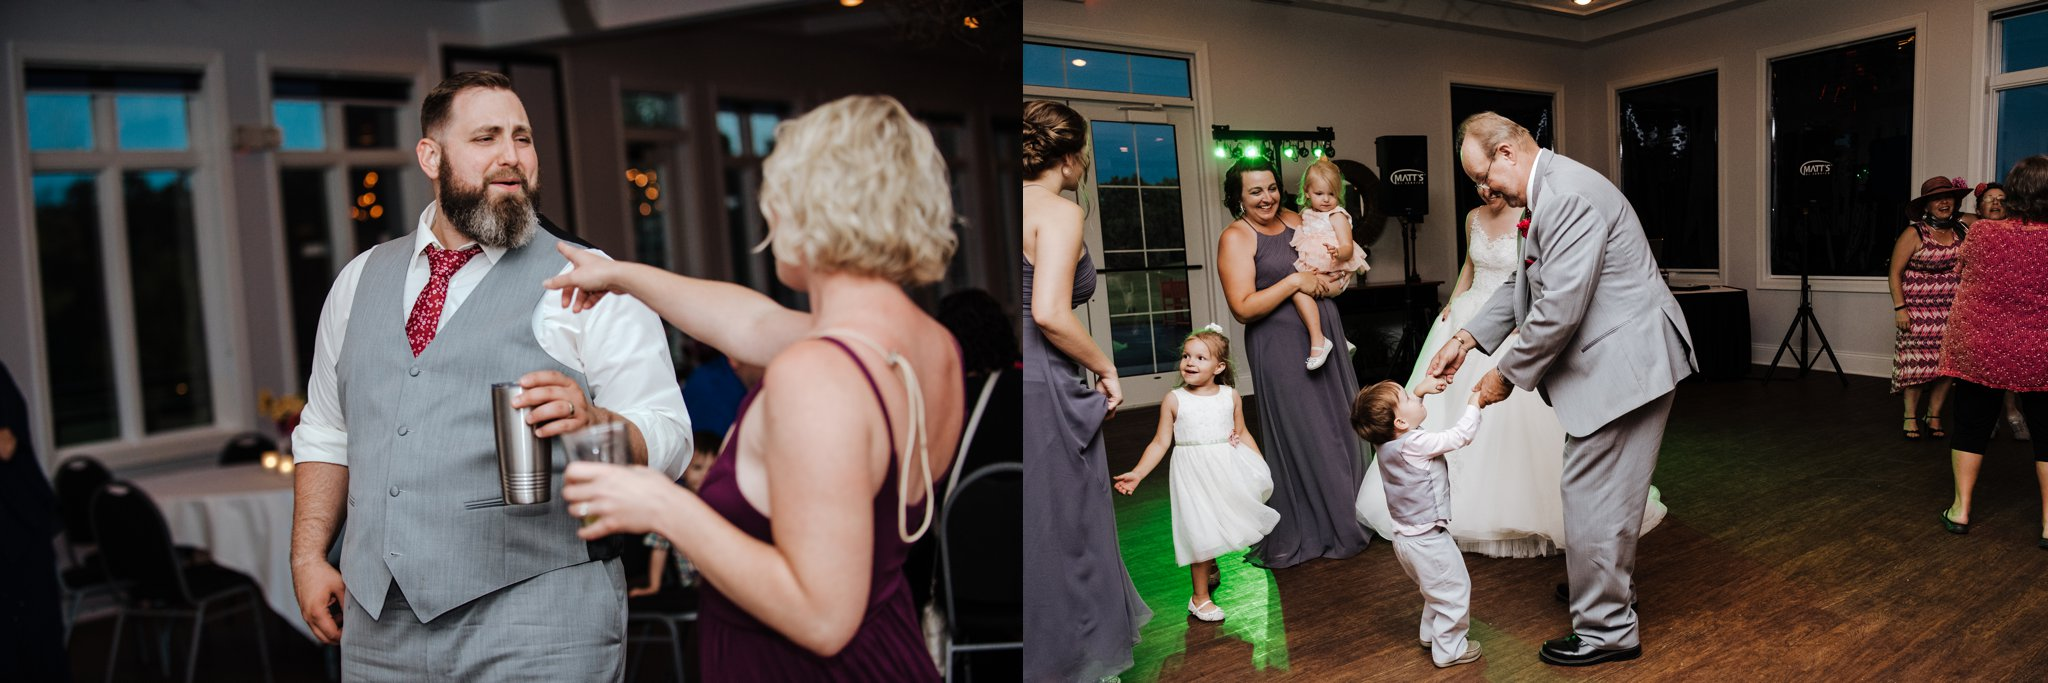 Wisconsin Wedding Photographer_6523.jpg